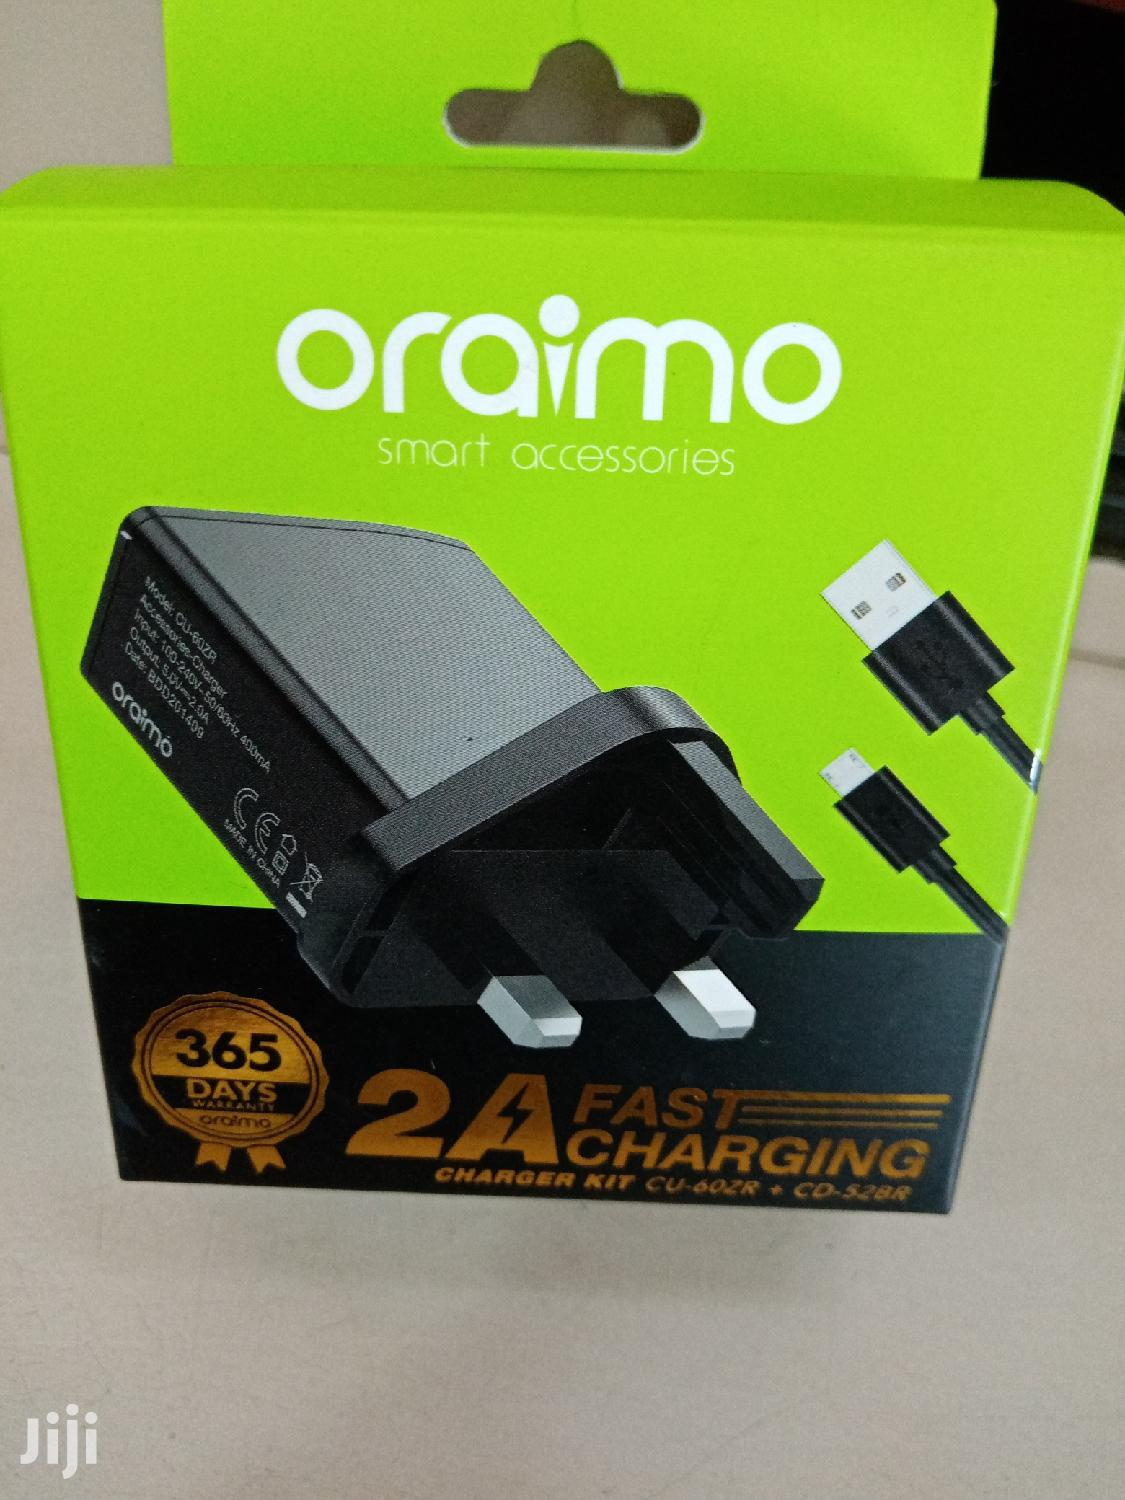 Oraimo Charger